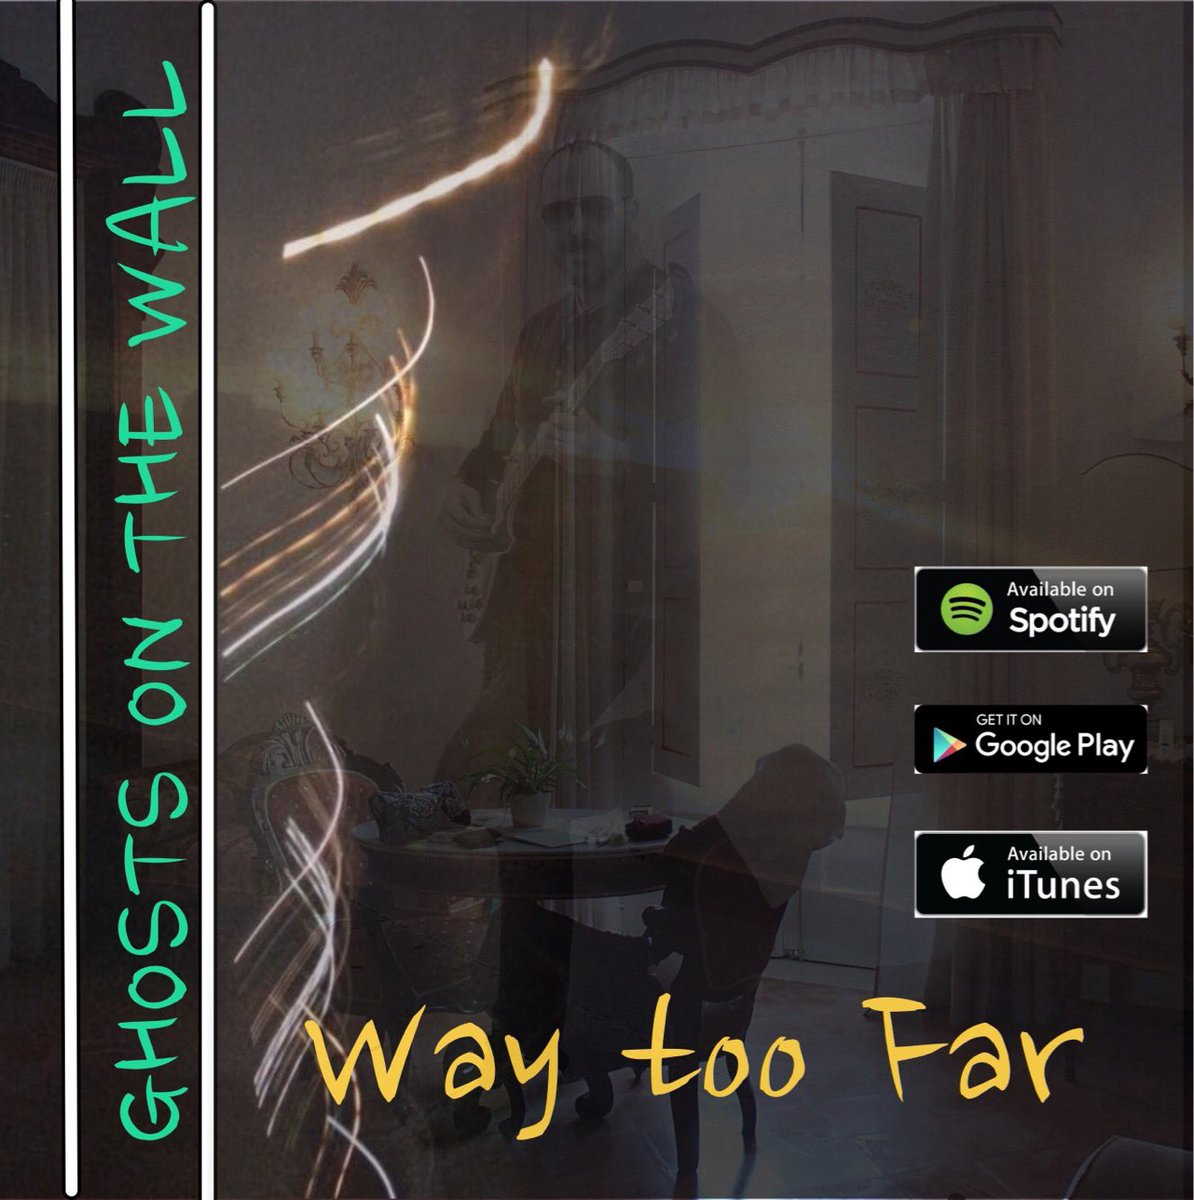 Out everywhere! #hitsong #rock #thecars #Sundayfunday #stratocaster #gibson #garageband #NewMusic #iTunes #Spotify<br>http://pic.twitter.com/VCdTDXyyTh